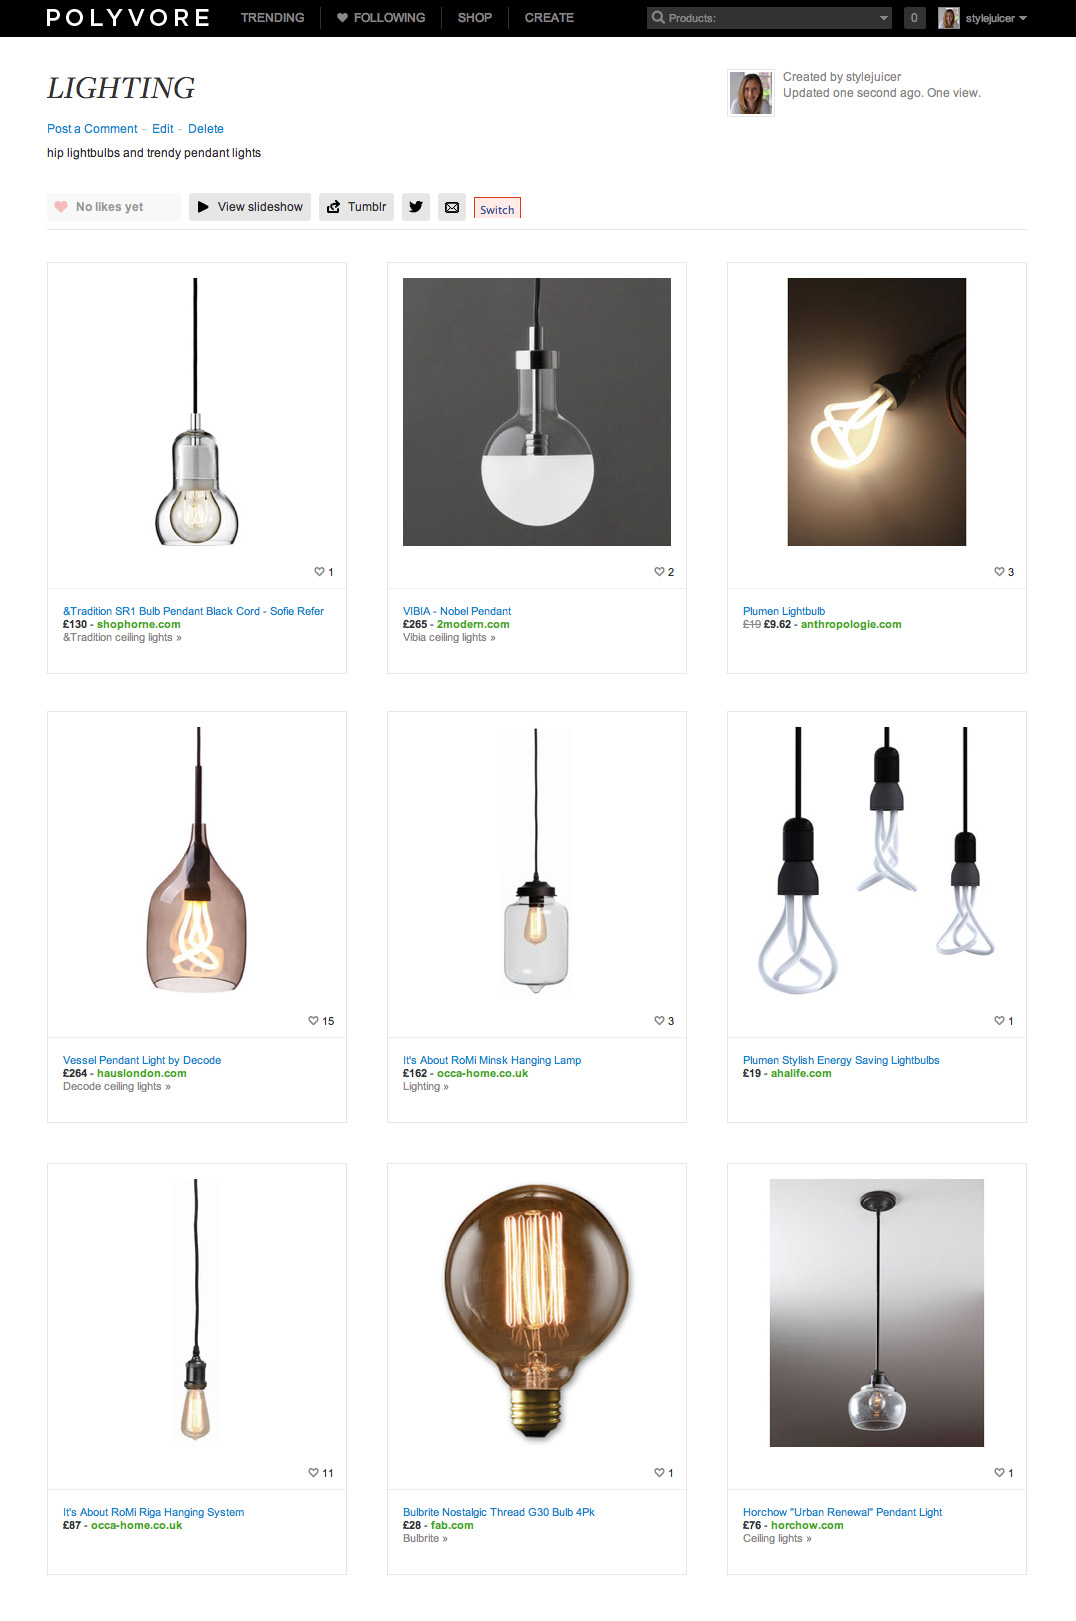 Stylejuicer Polyvore LIGHTING Collection